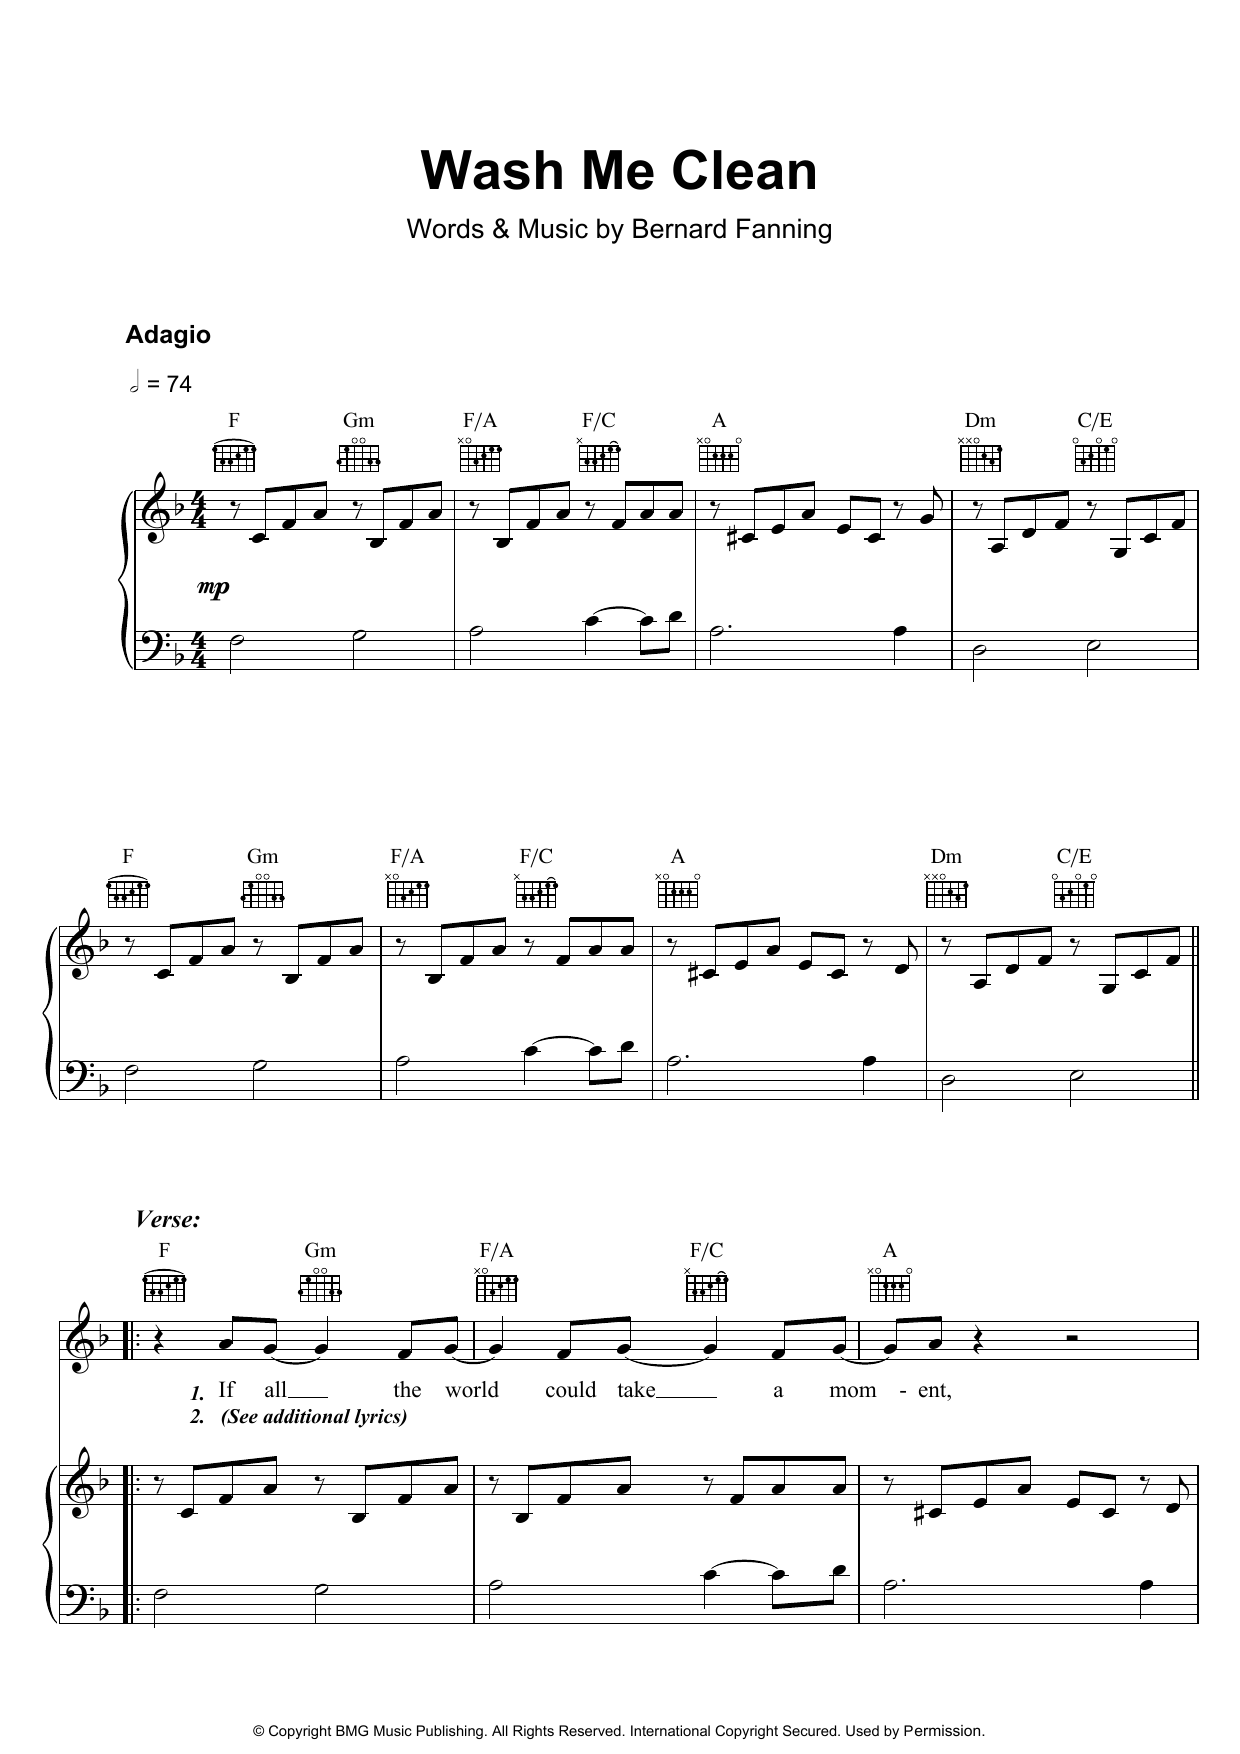 Bernard Fanning Wash Me Clean sheet music preview music notes and score for Piano, Vocal & Guitar including 5 page(s)